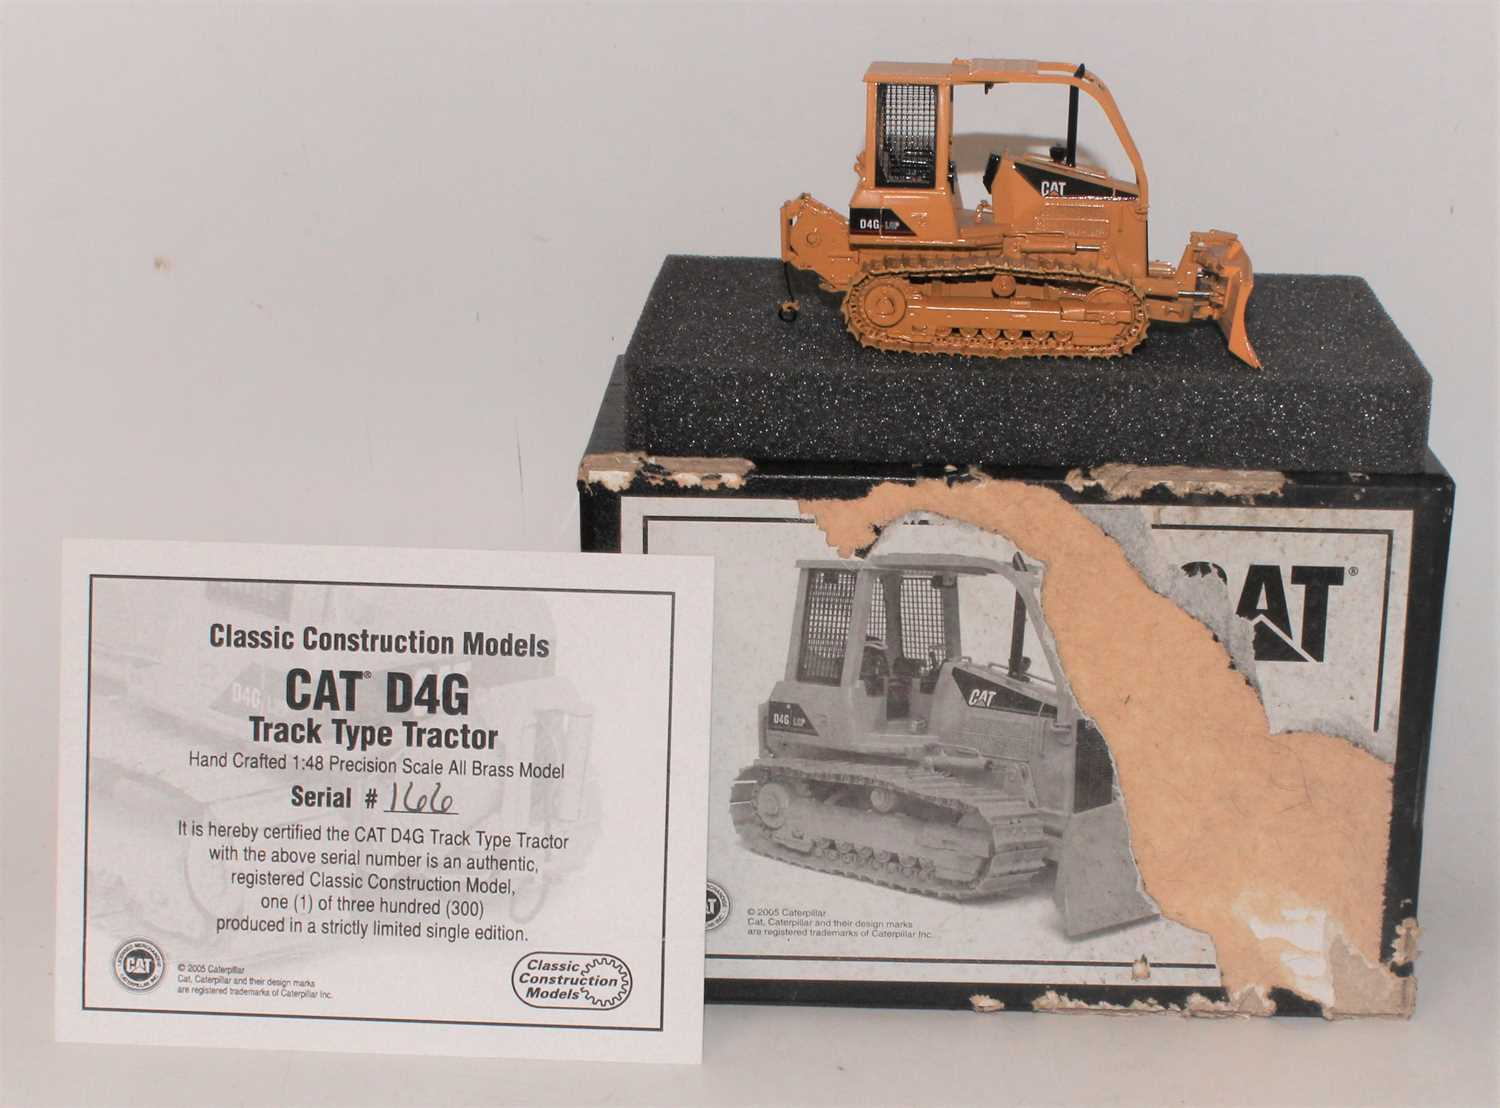 A Classic Construction Models (CCM) 1/48 scale all brass model of a Caterpillar D4G track type